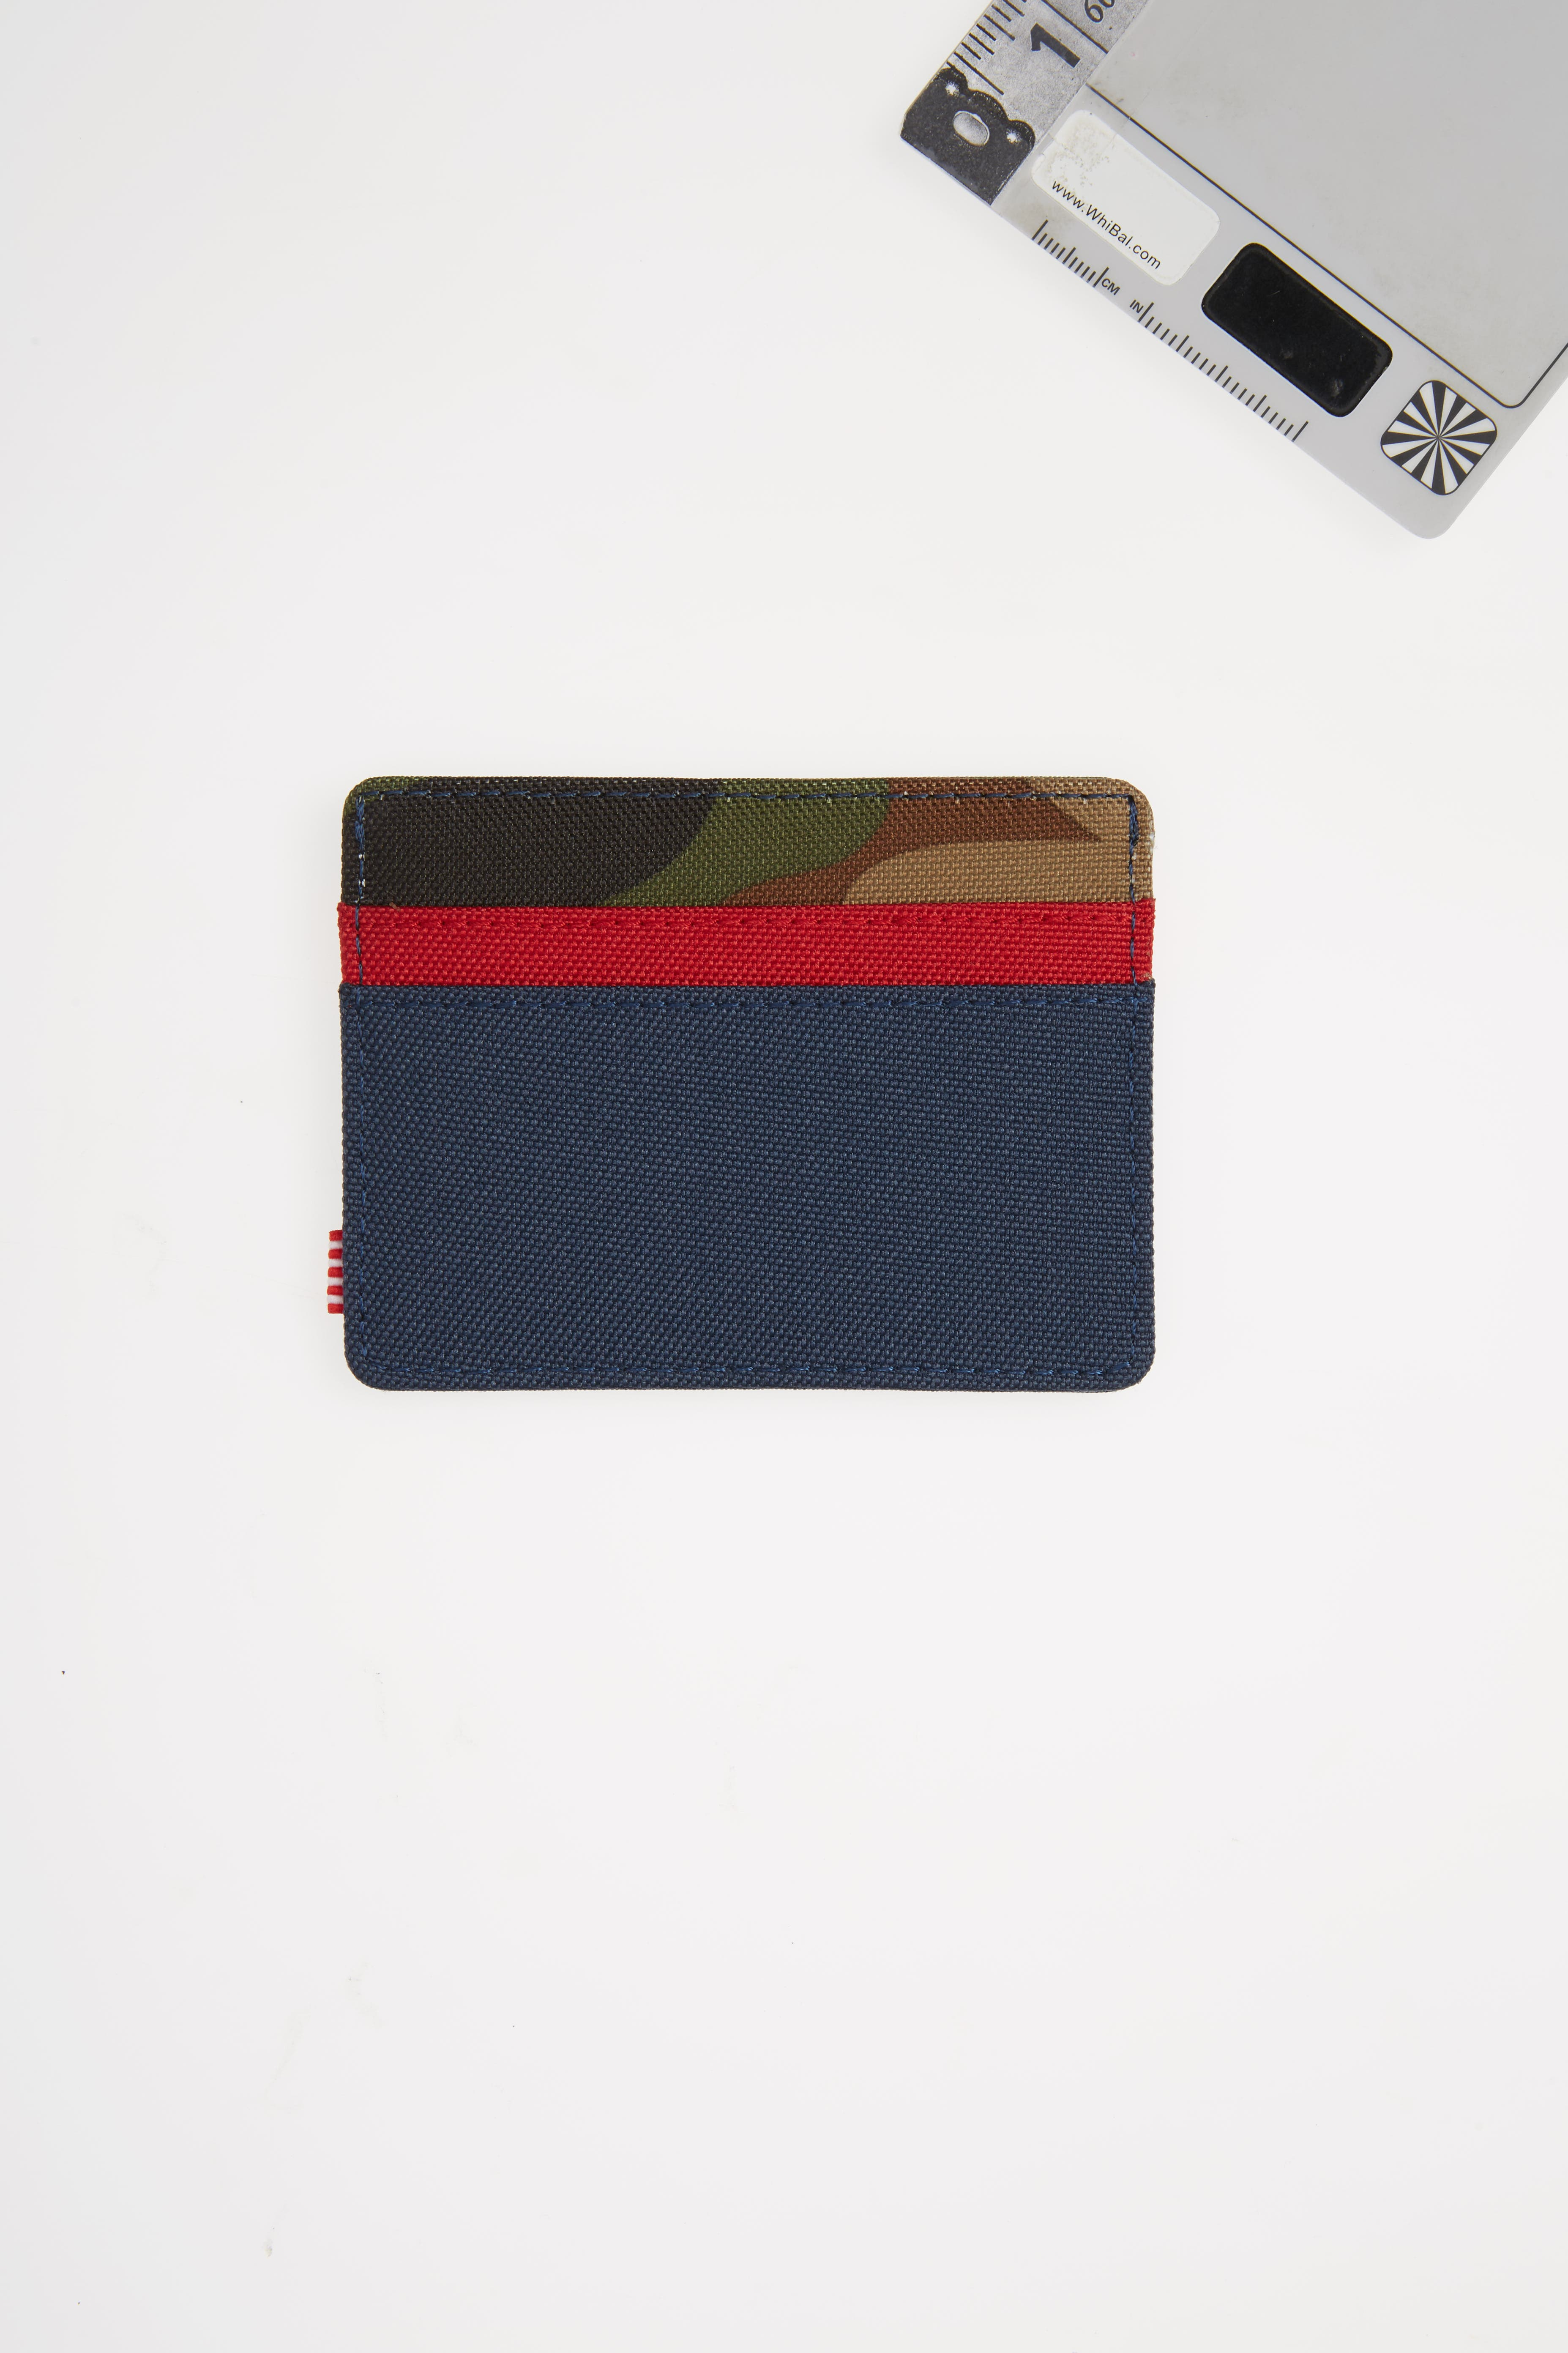 Charlie RFID Card Case,                             Alternate thumbnail 3, color,                             NAVY/ RED/ CAMO